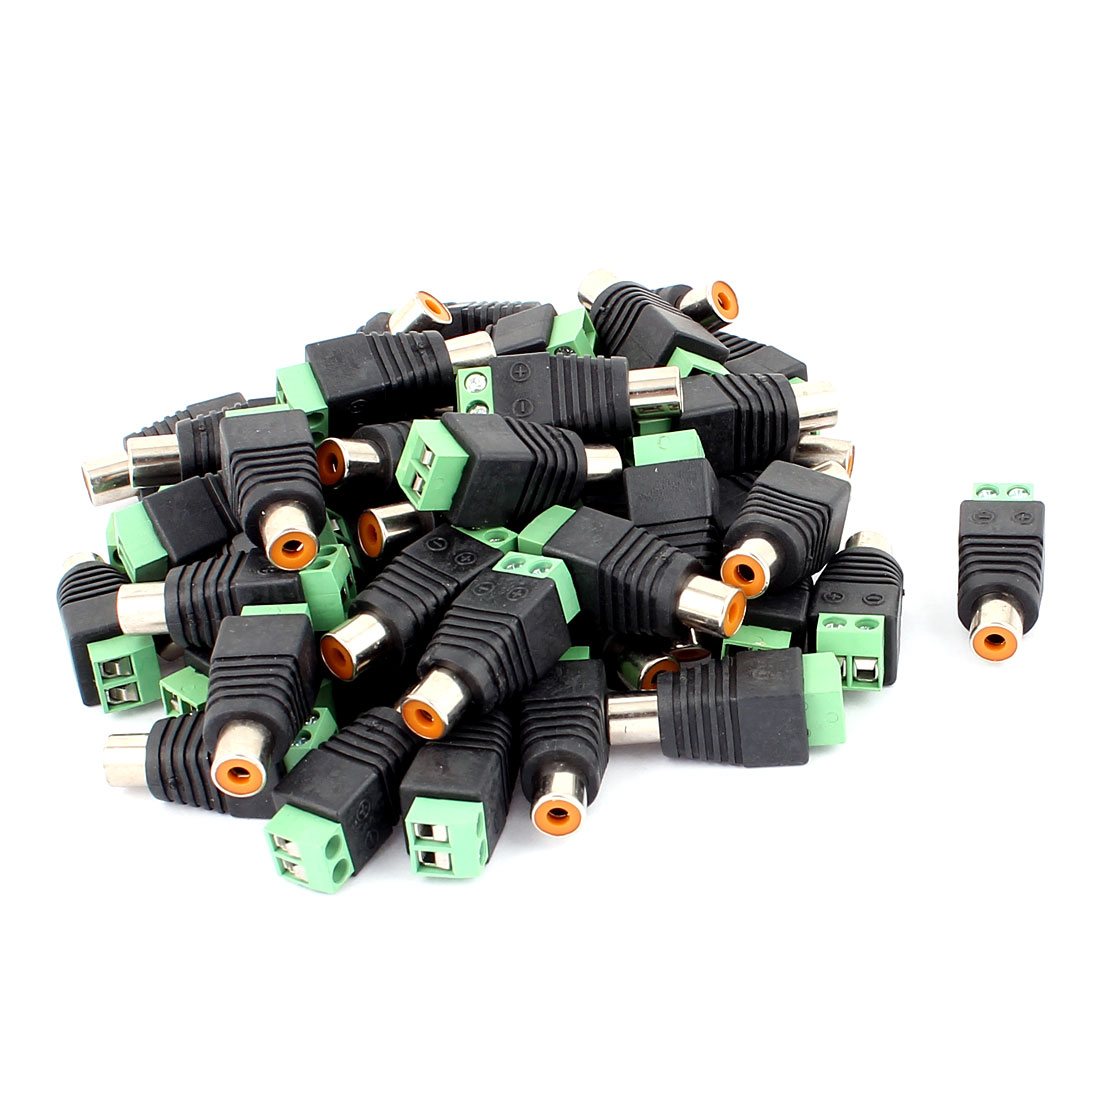 50 Pcs Screw Terminal Coaxial Cat5 Cat6 to Audio Video RCA Female Jack Connector